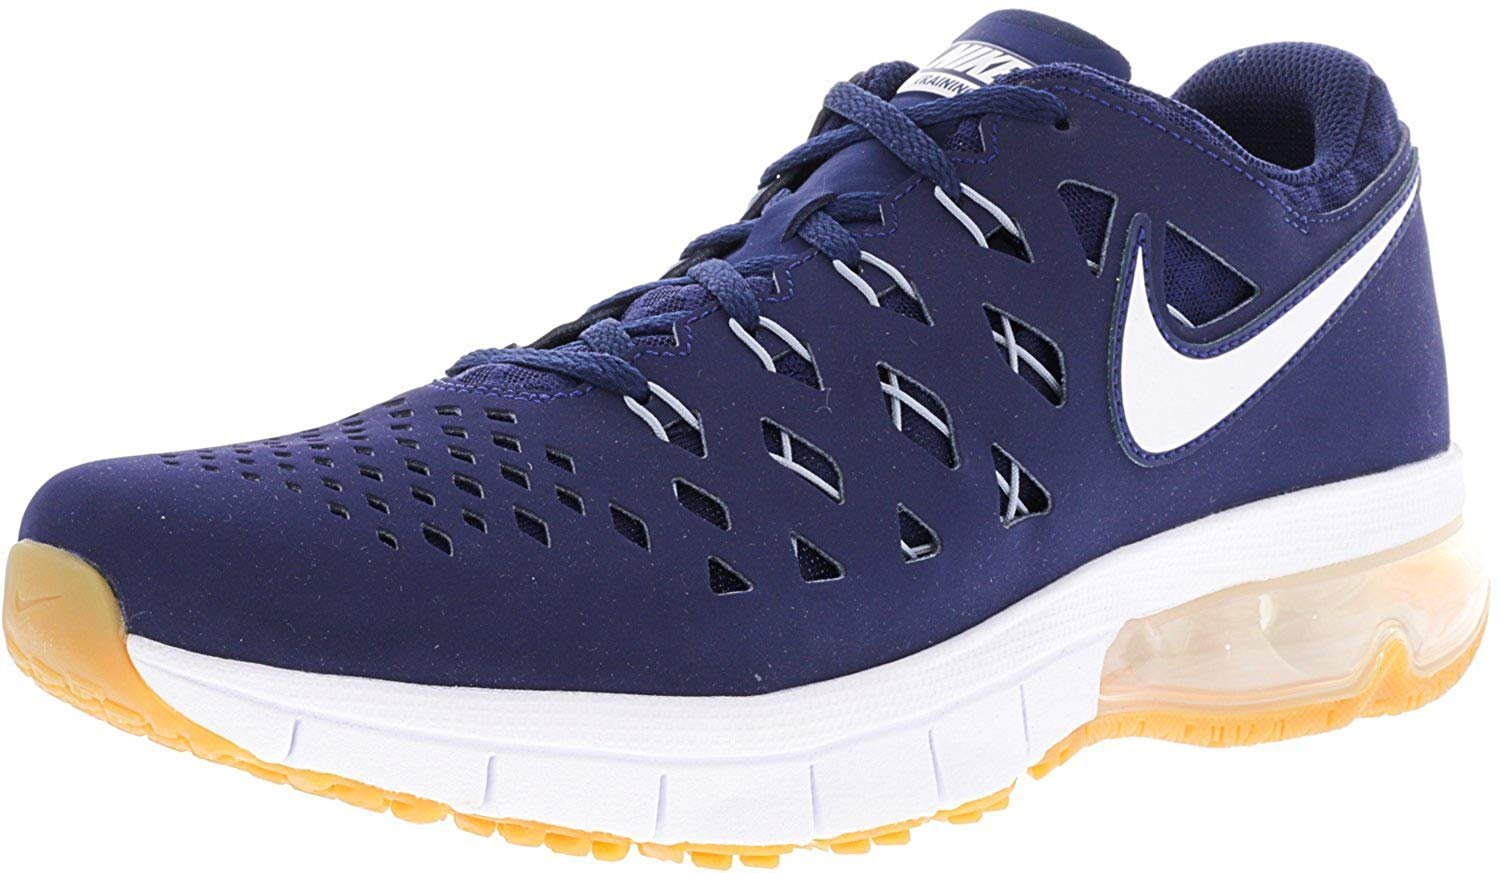 NIKE NIKE NIKE Mens Air Trainer 180 Synthetic Cross-Trainers Shoes cdcd4b